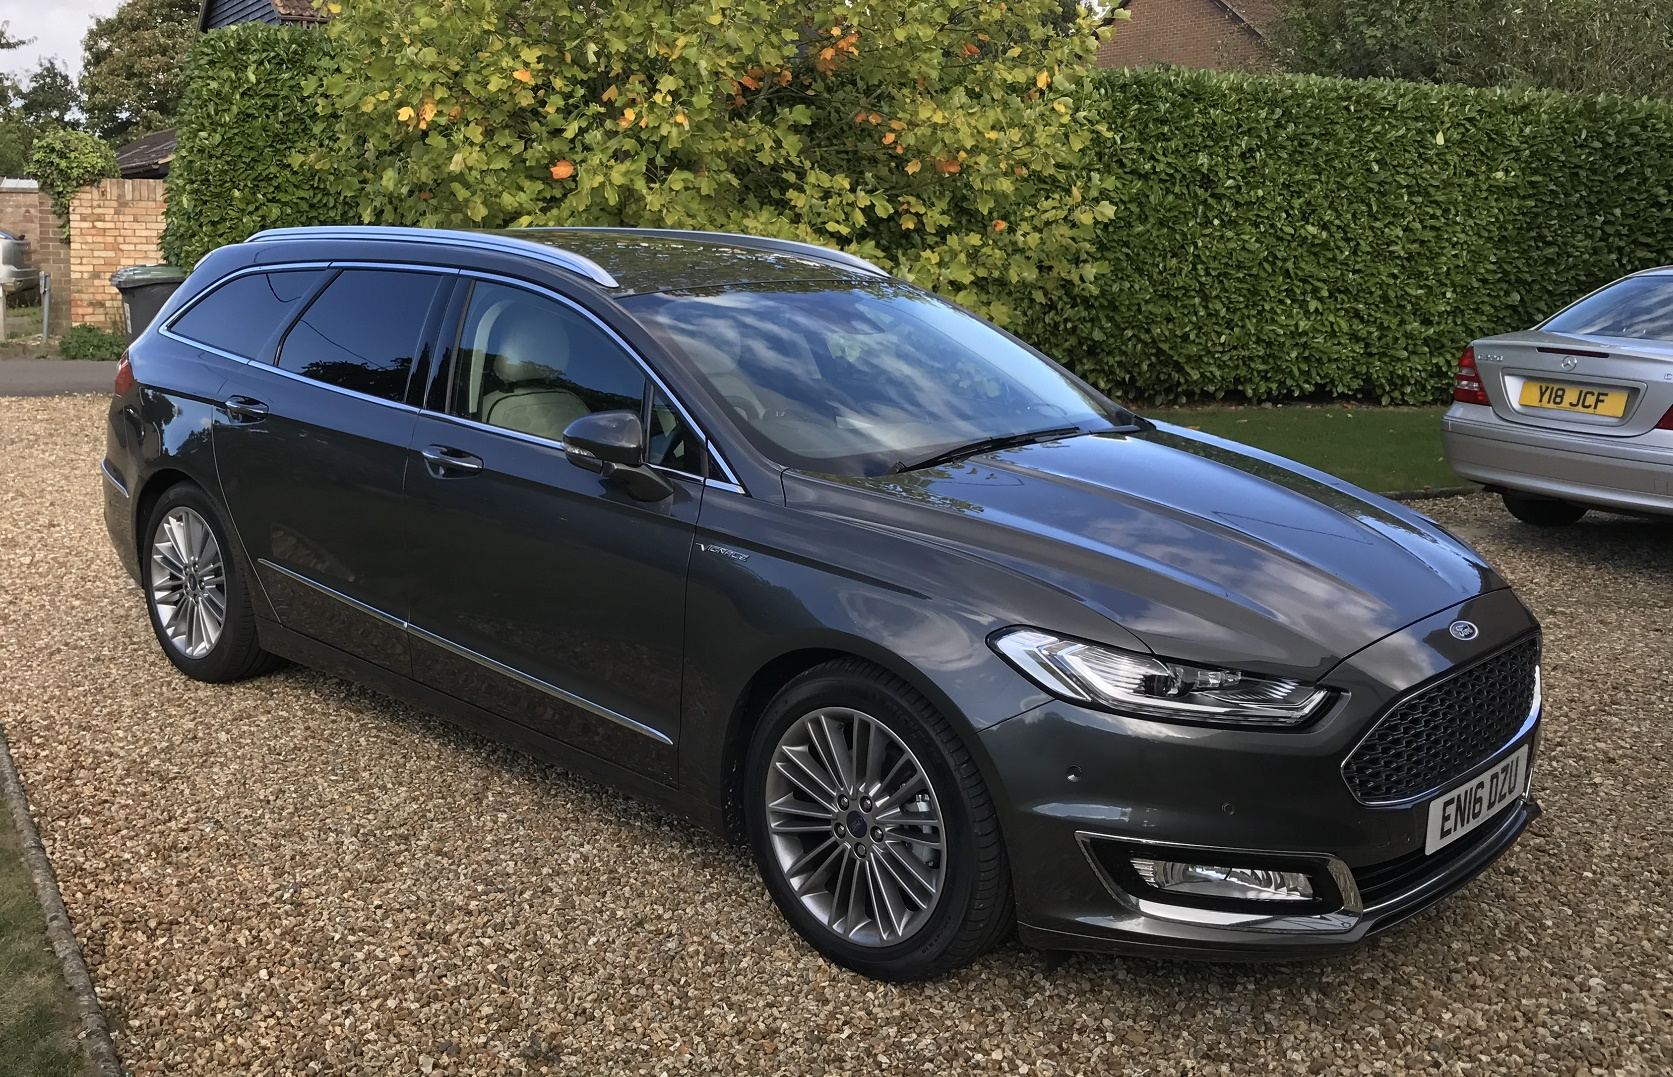 Ford Mondeo Vignale 2.0 TDCI 180 Powershift Estate